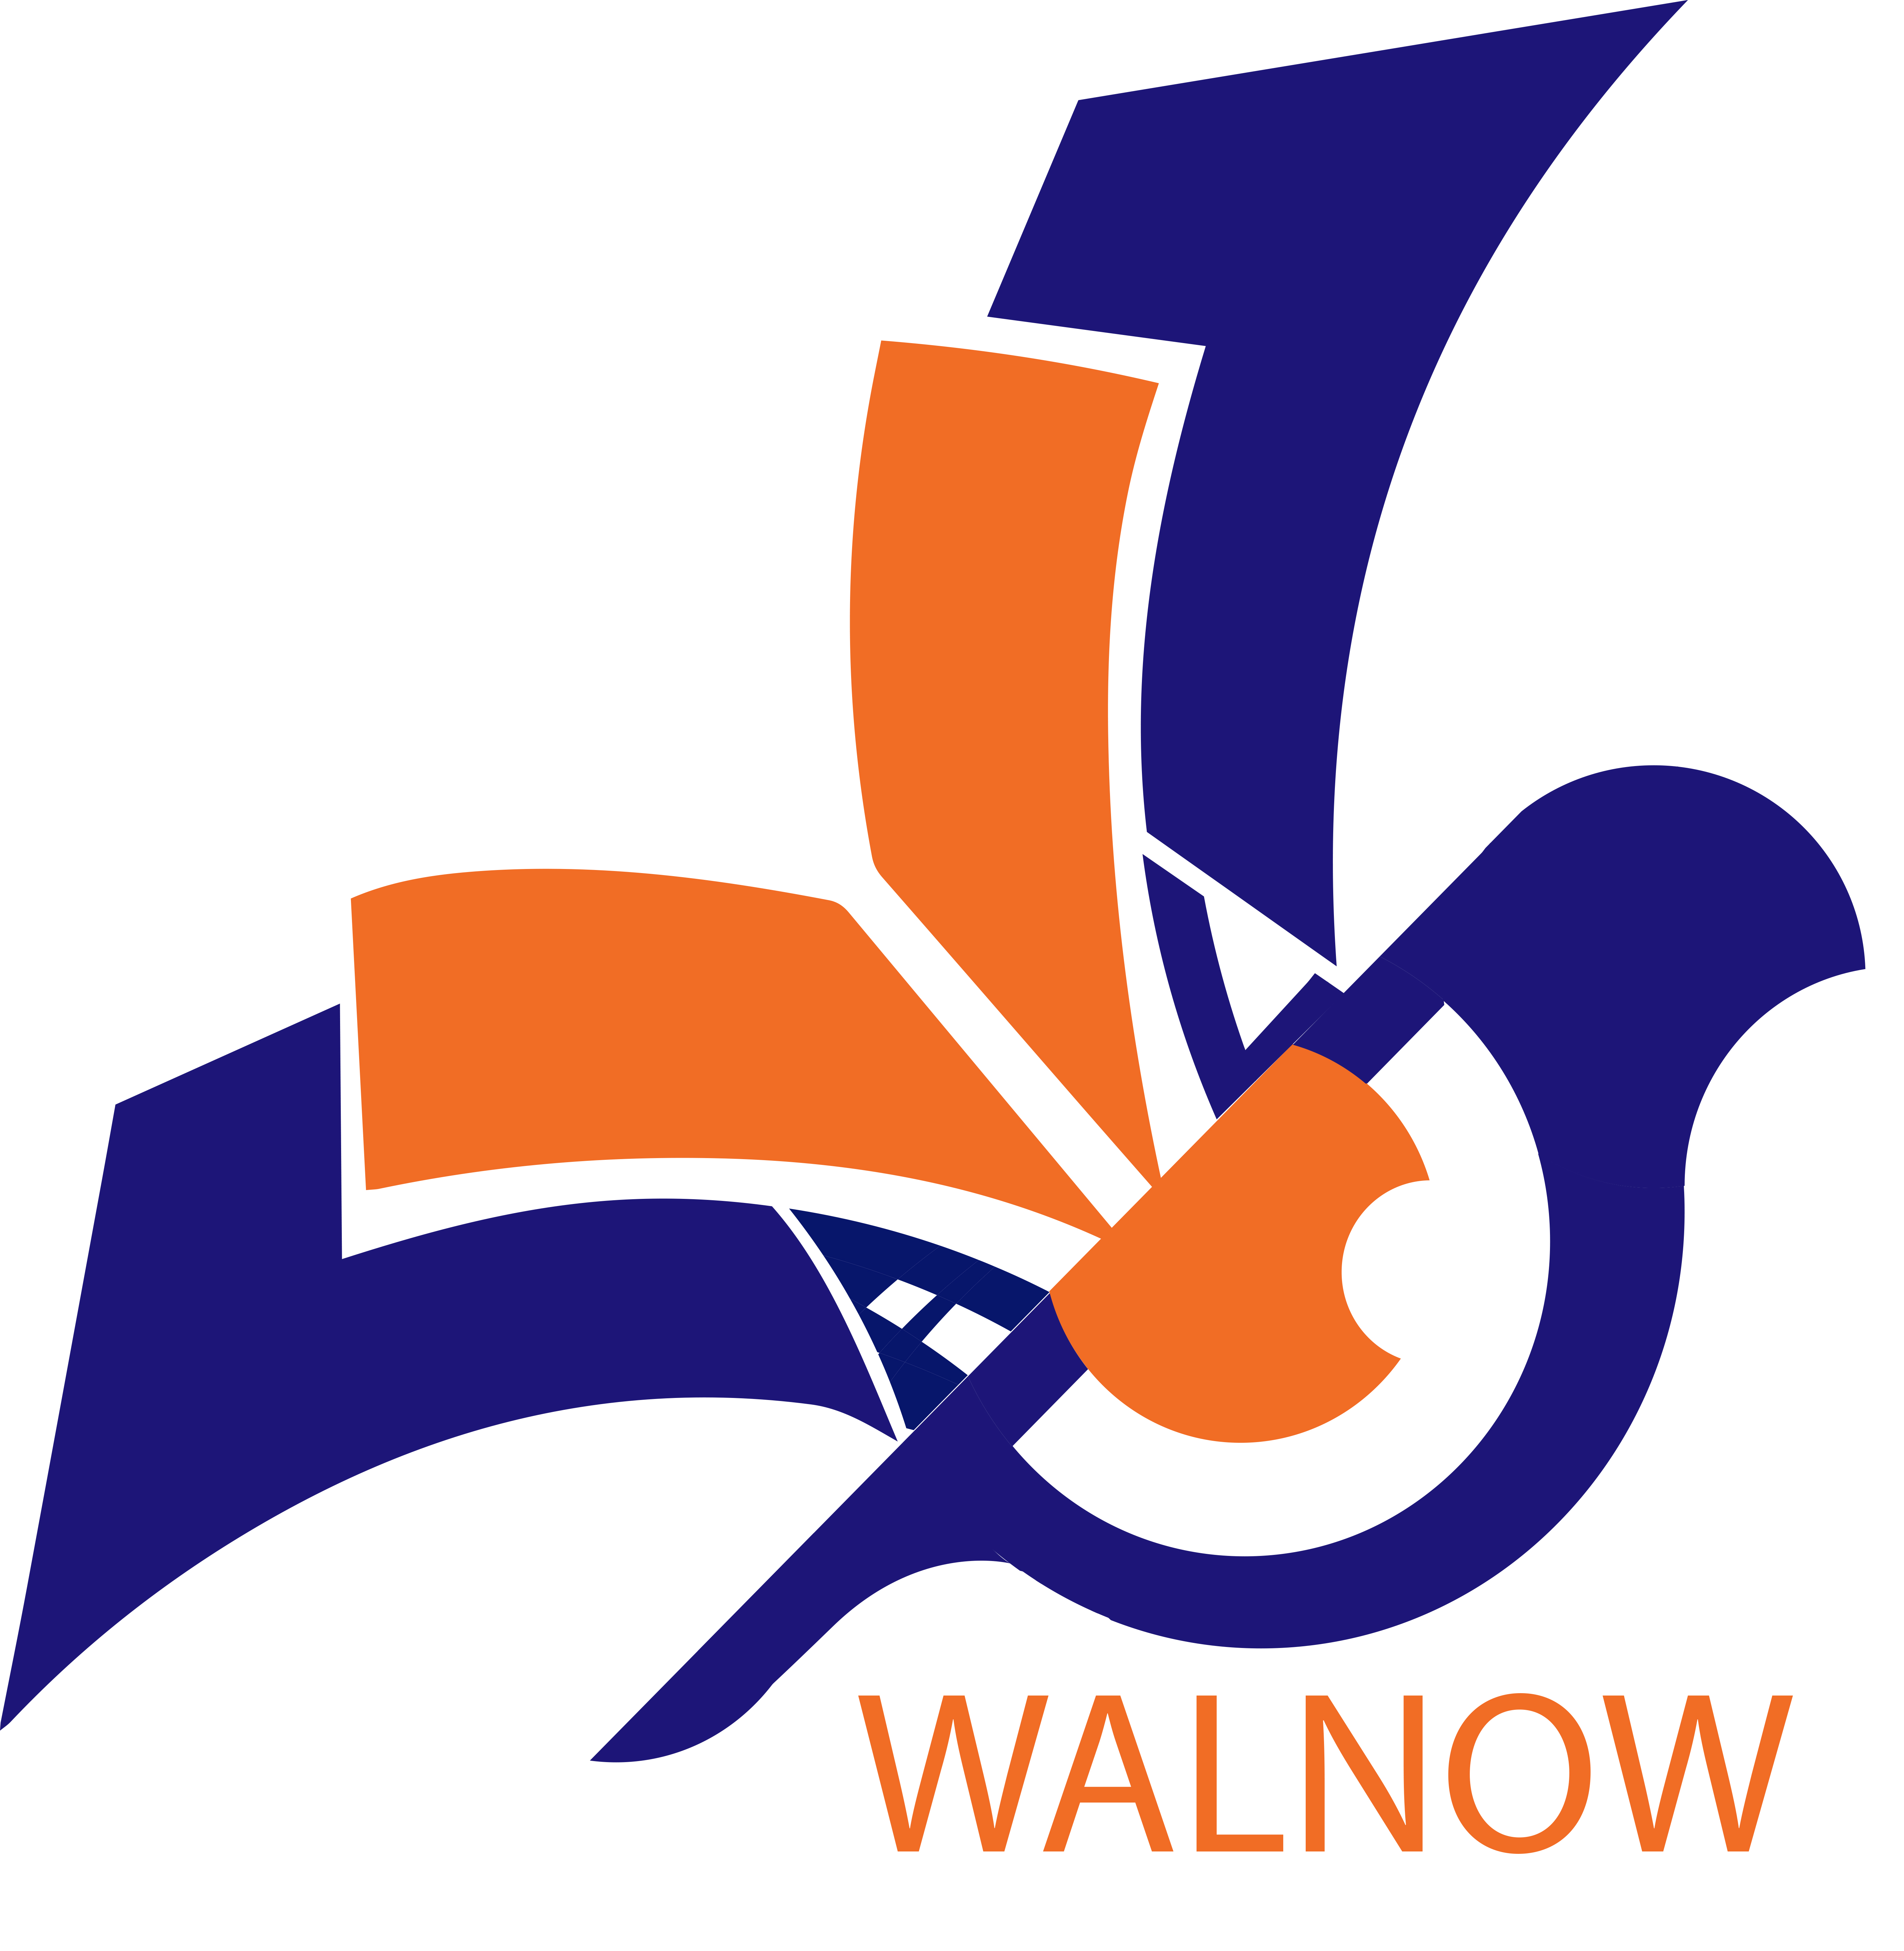 WALNOW Company For Consulting And Training